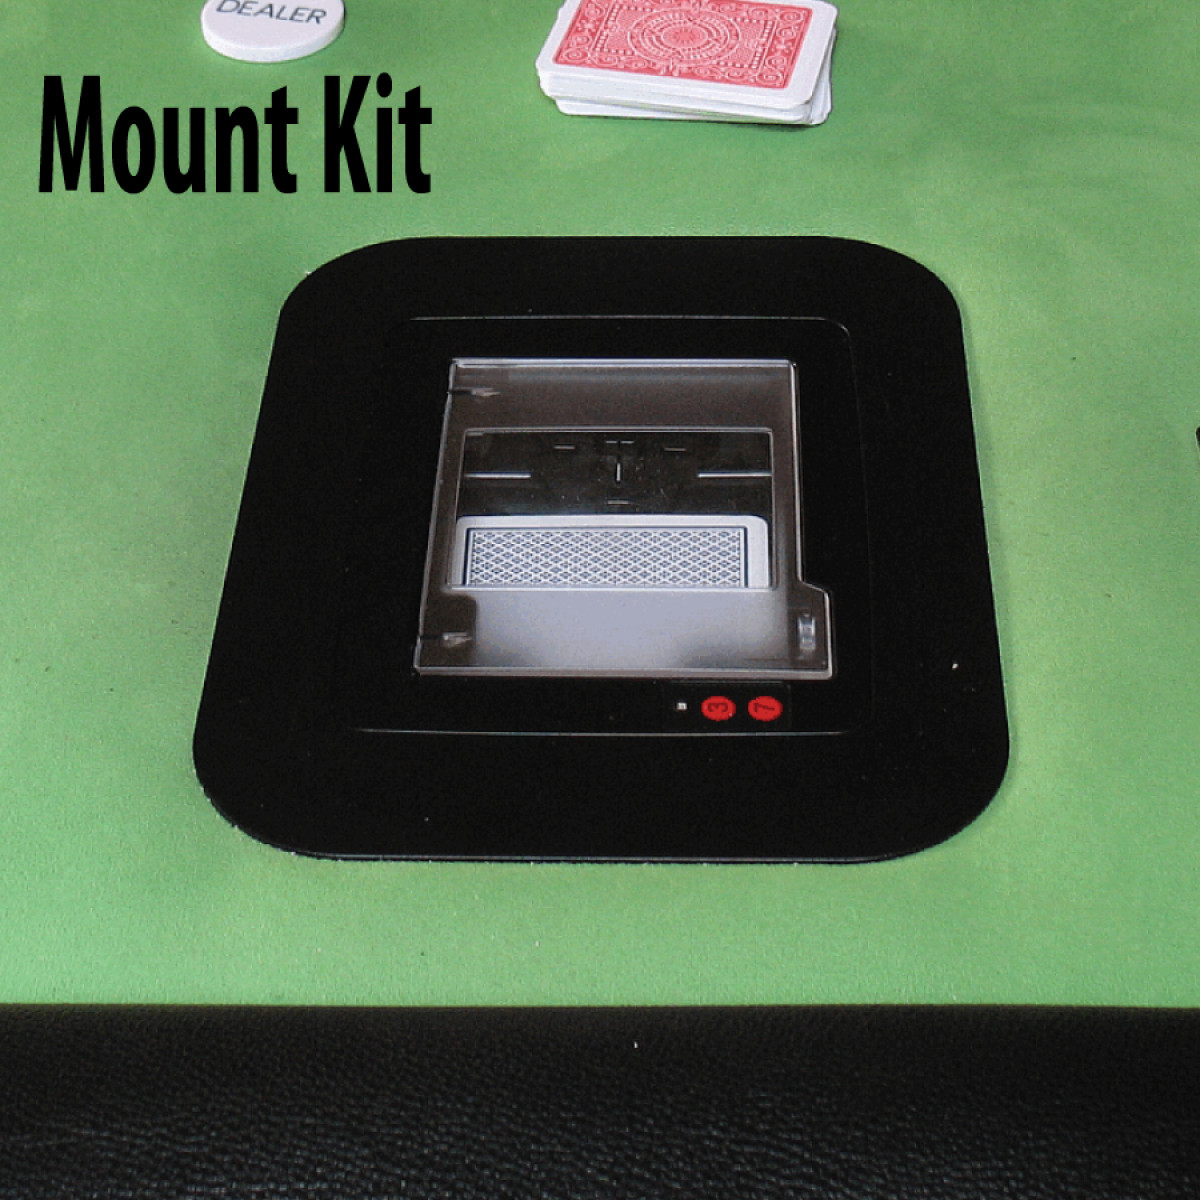 Automatic card shuffler for poker tables st1000 shuffle tech optimum placard roulette